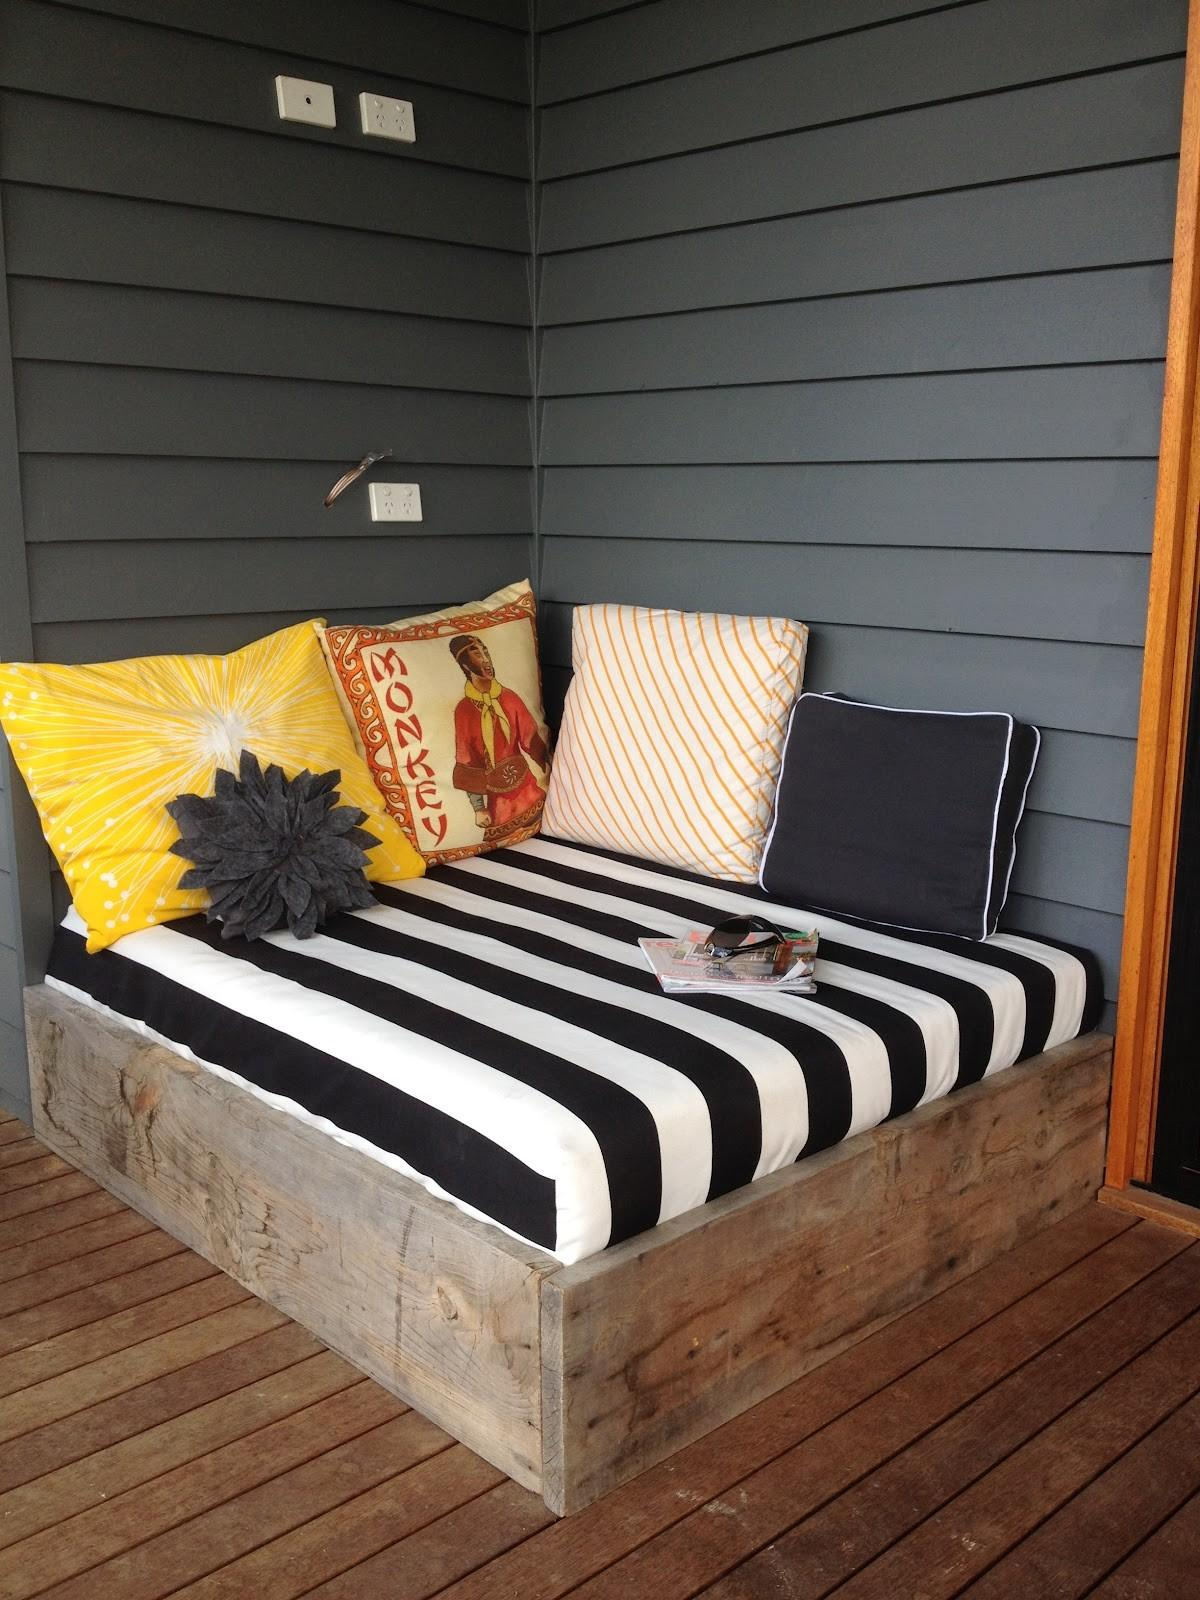 29 Fantastic Diy Pallet Outdoor Daybed That Abound With Elegance With Pictures Decoratorist